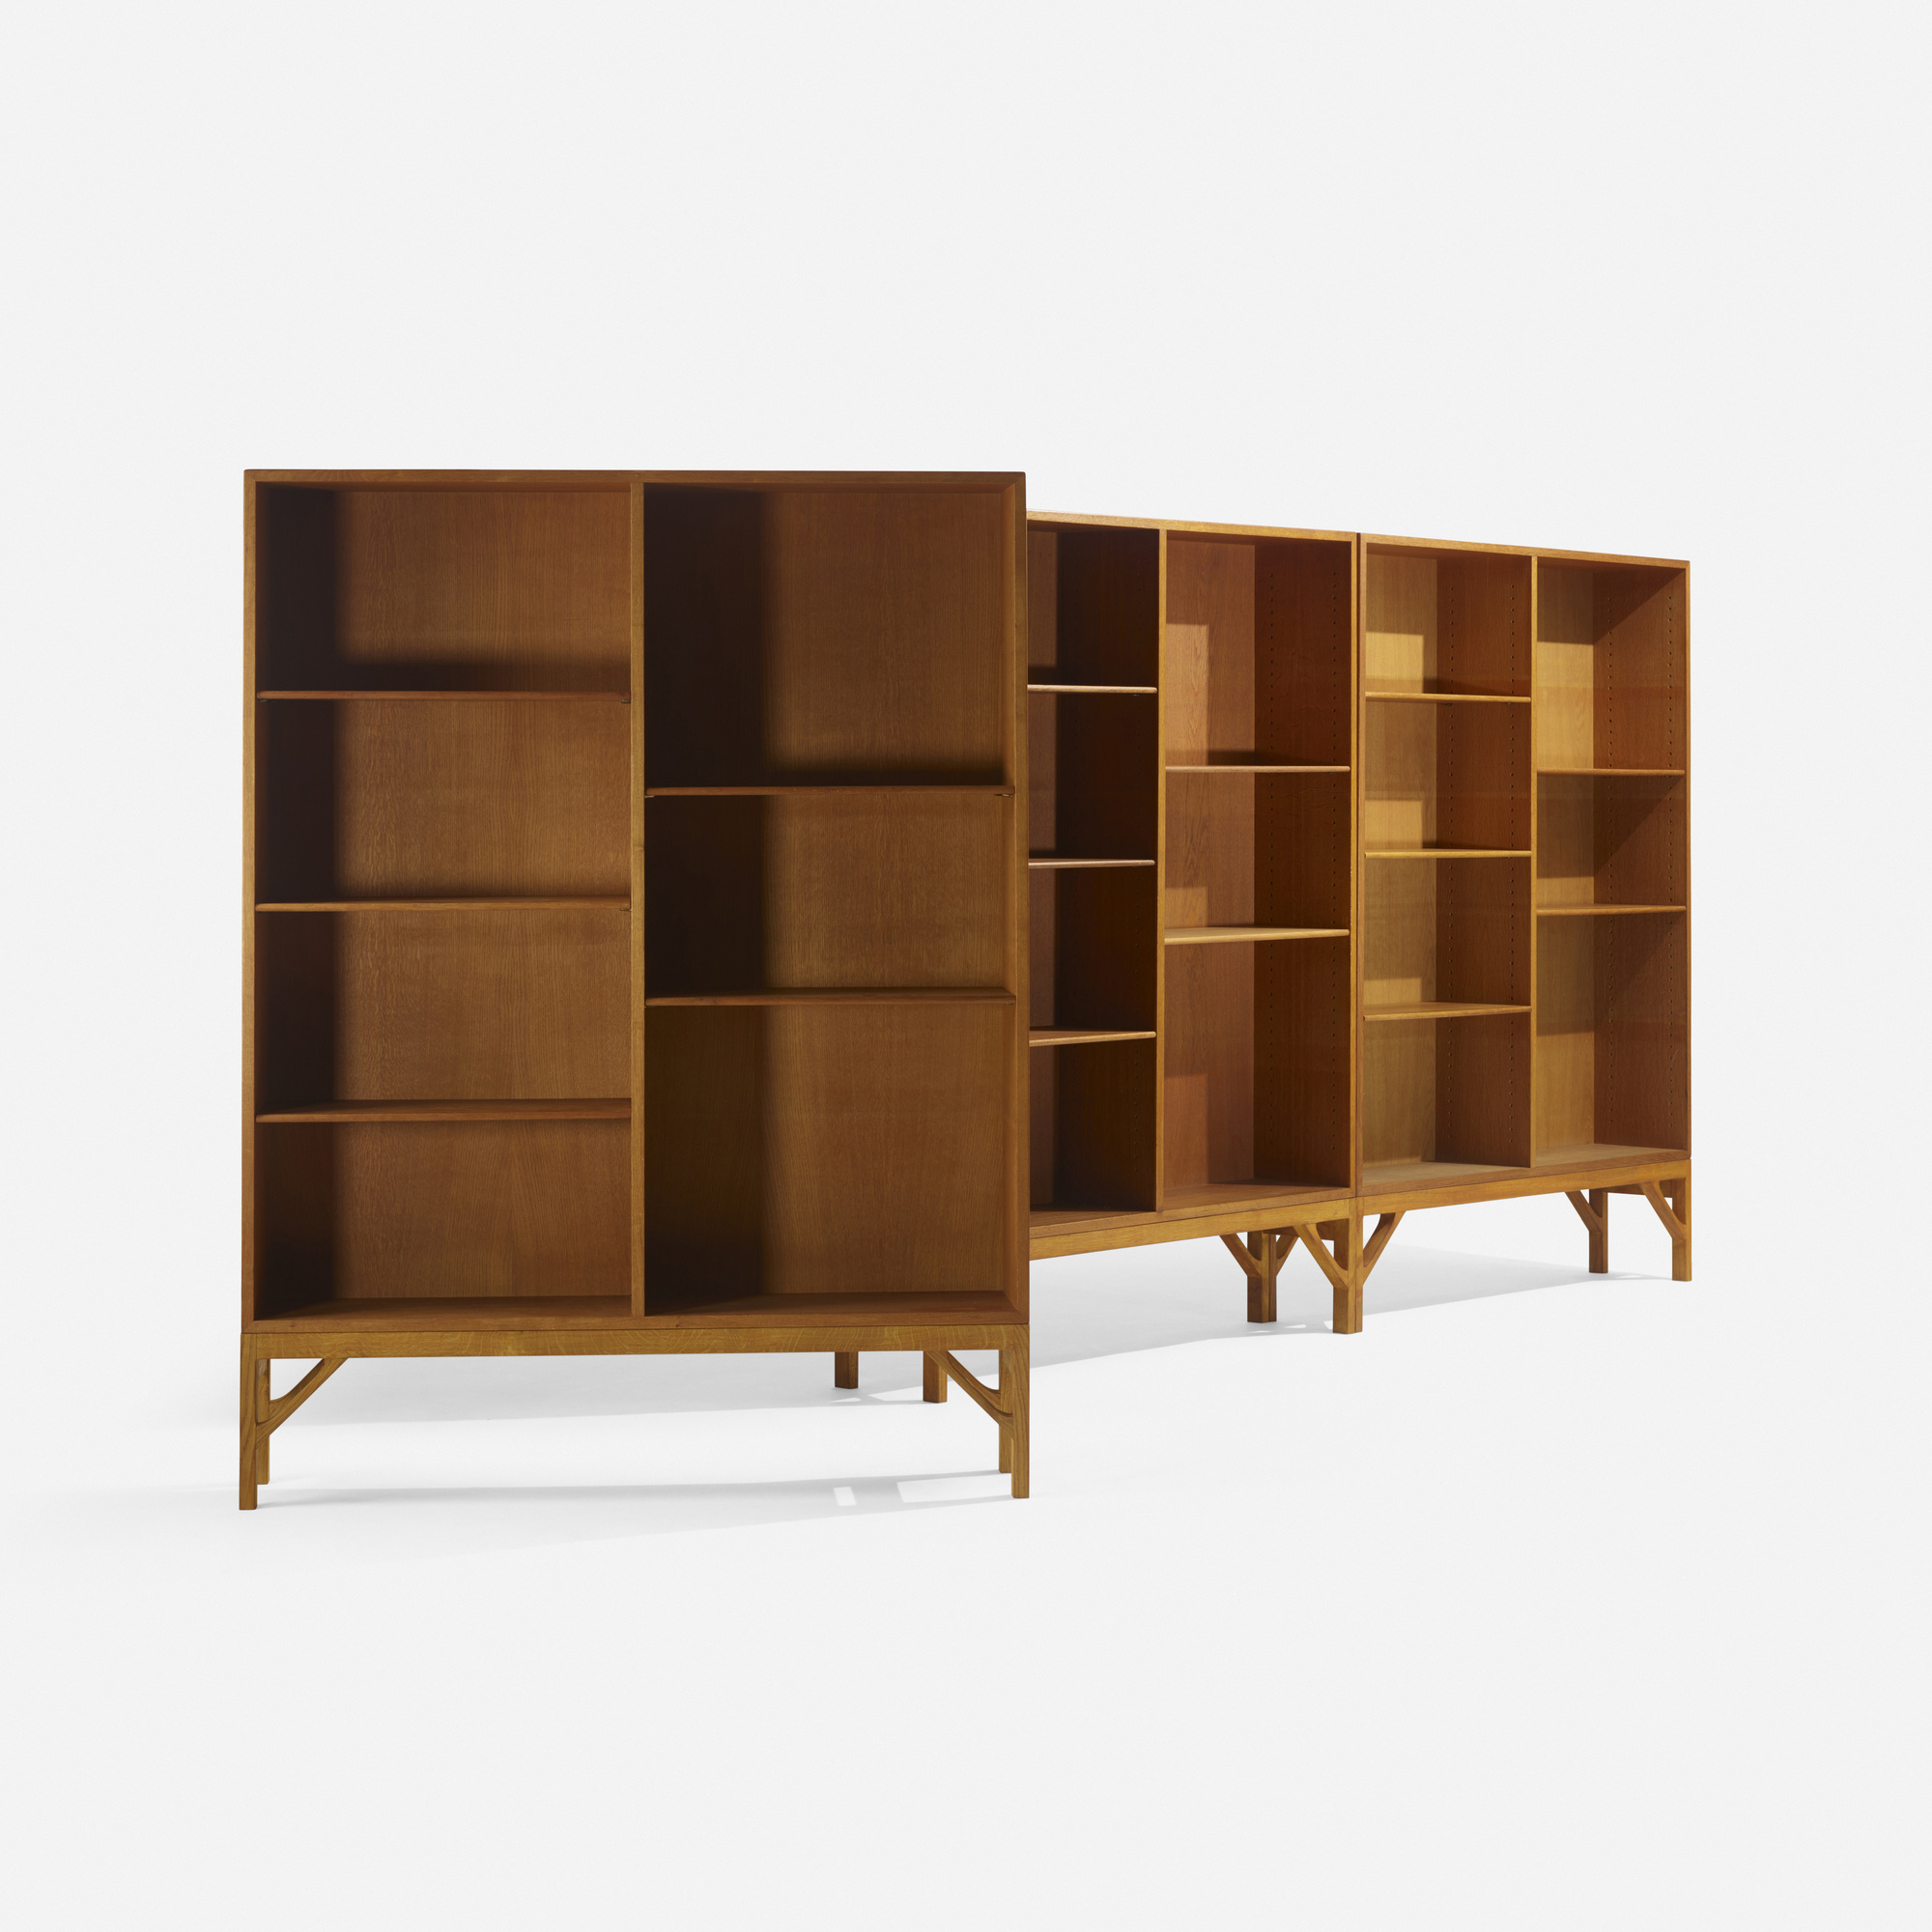 278: Børge Mogensen / bookcases, set of three (2 of 2)